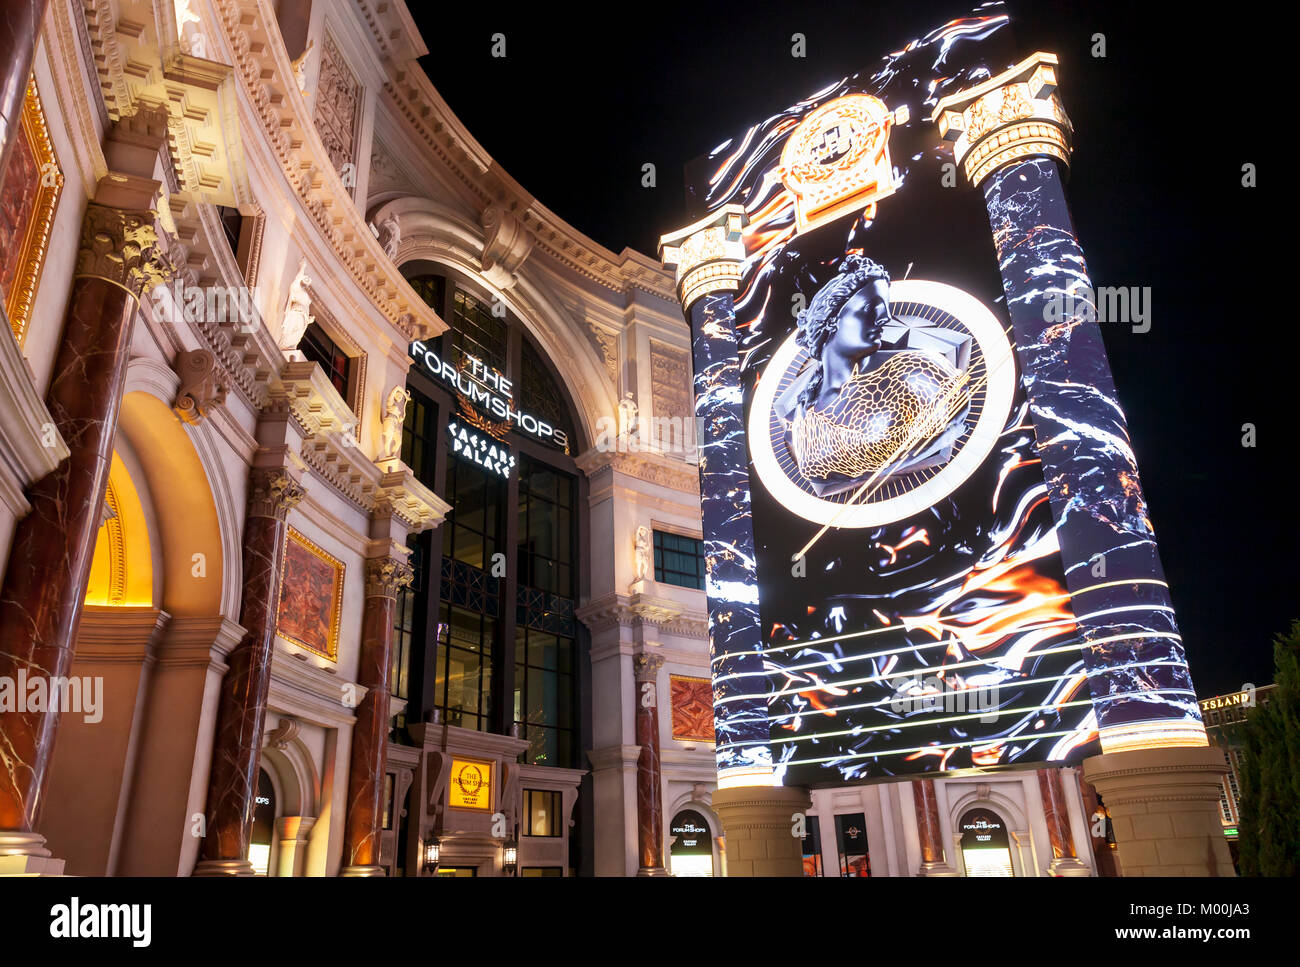 The Forum Shops at Caesars Palace in Las Vegas, Nevada. - Stock Image